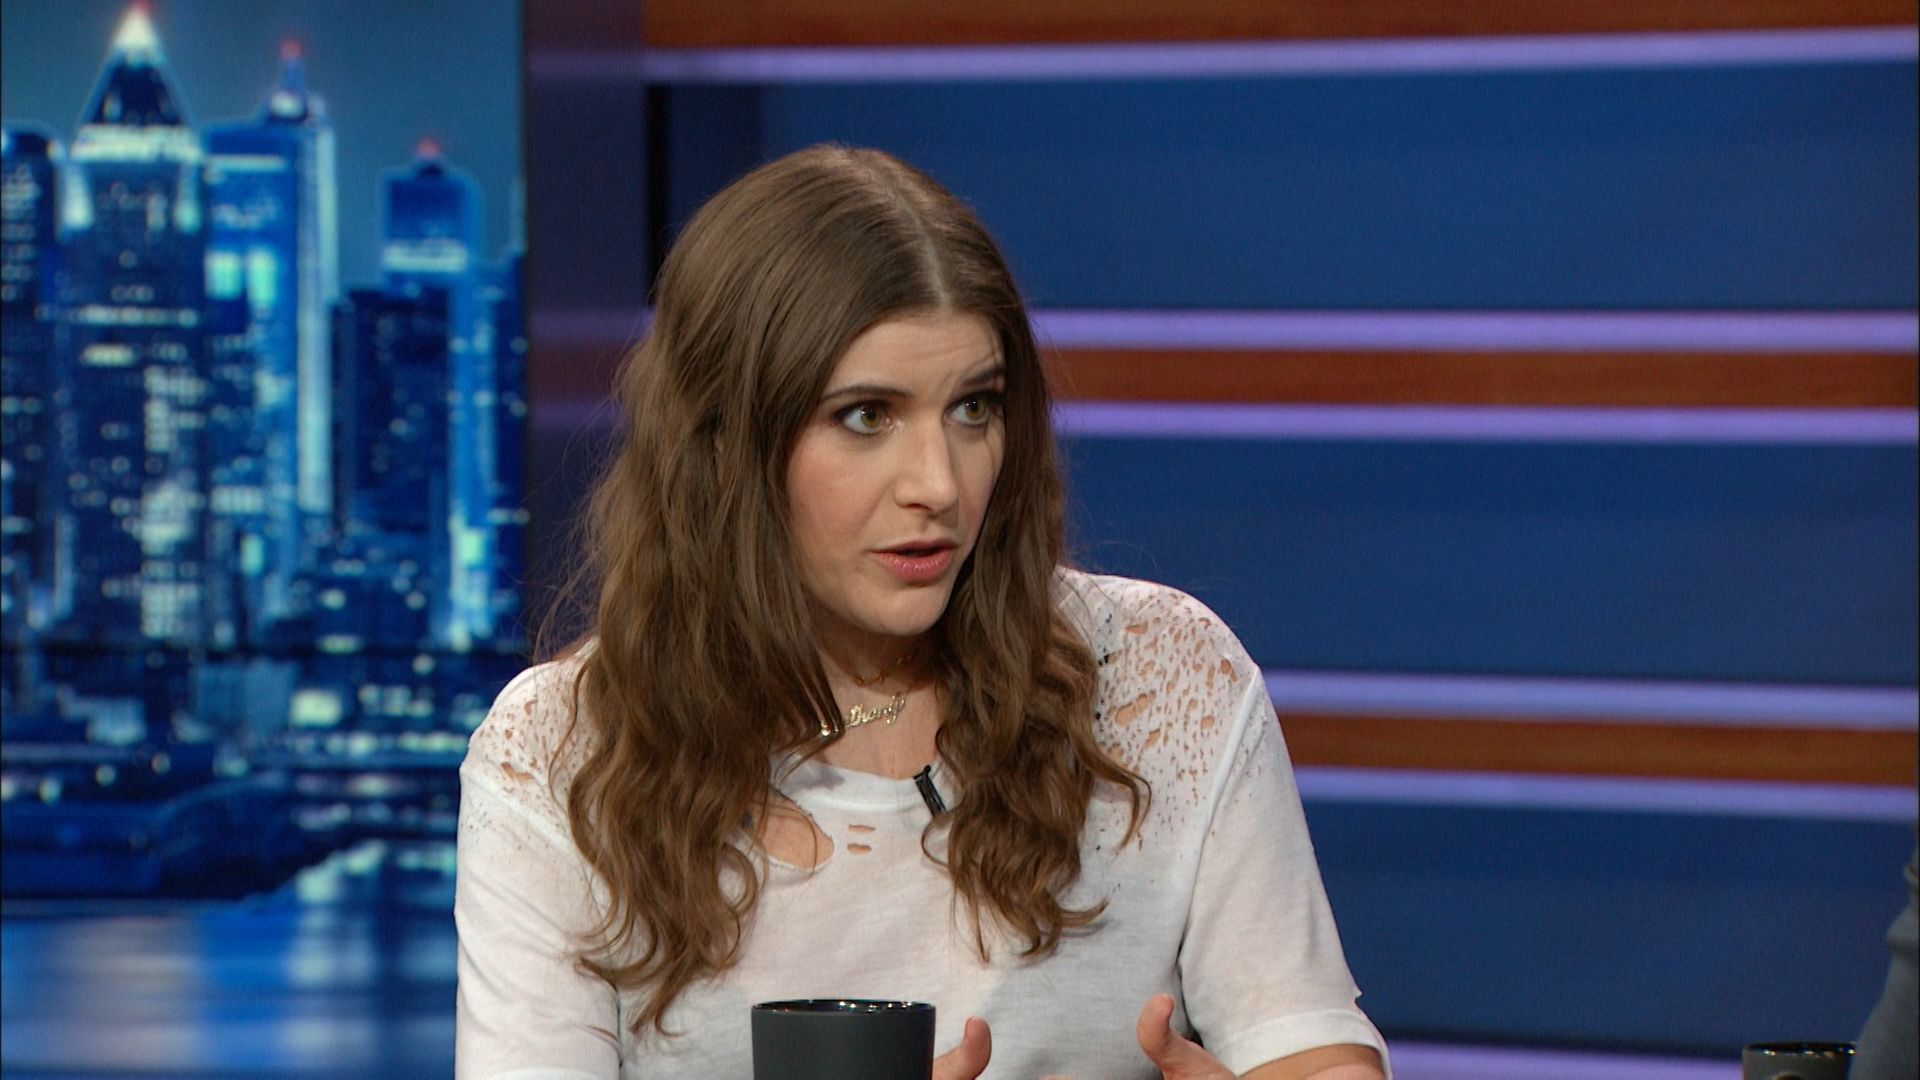 bethany cosentino speaking up about sexism in the music industry the daily show with trevor noah comedy central